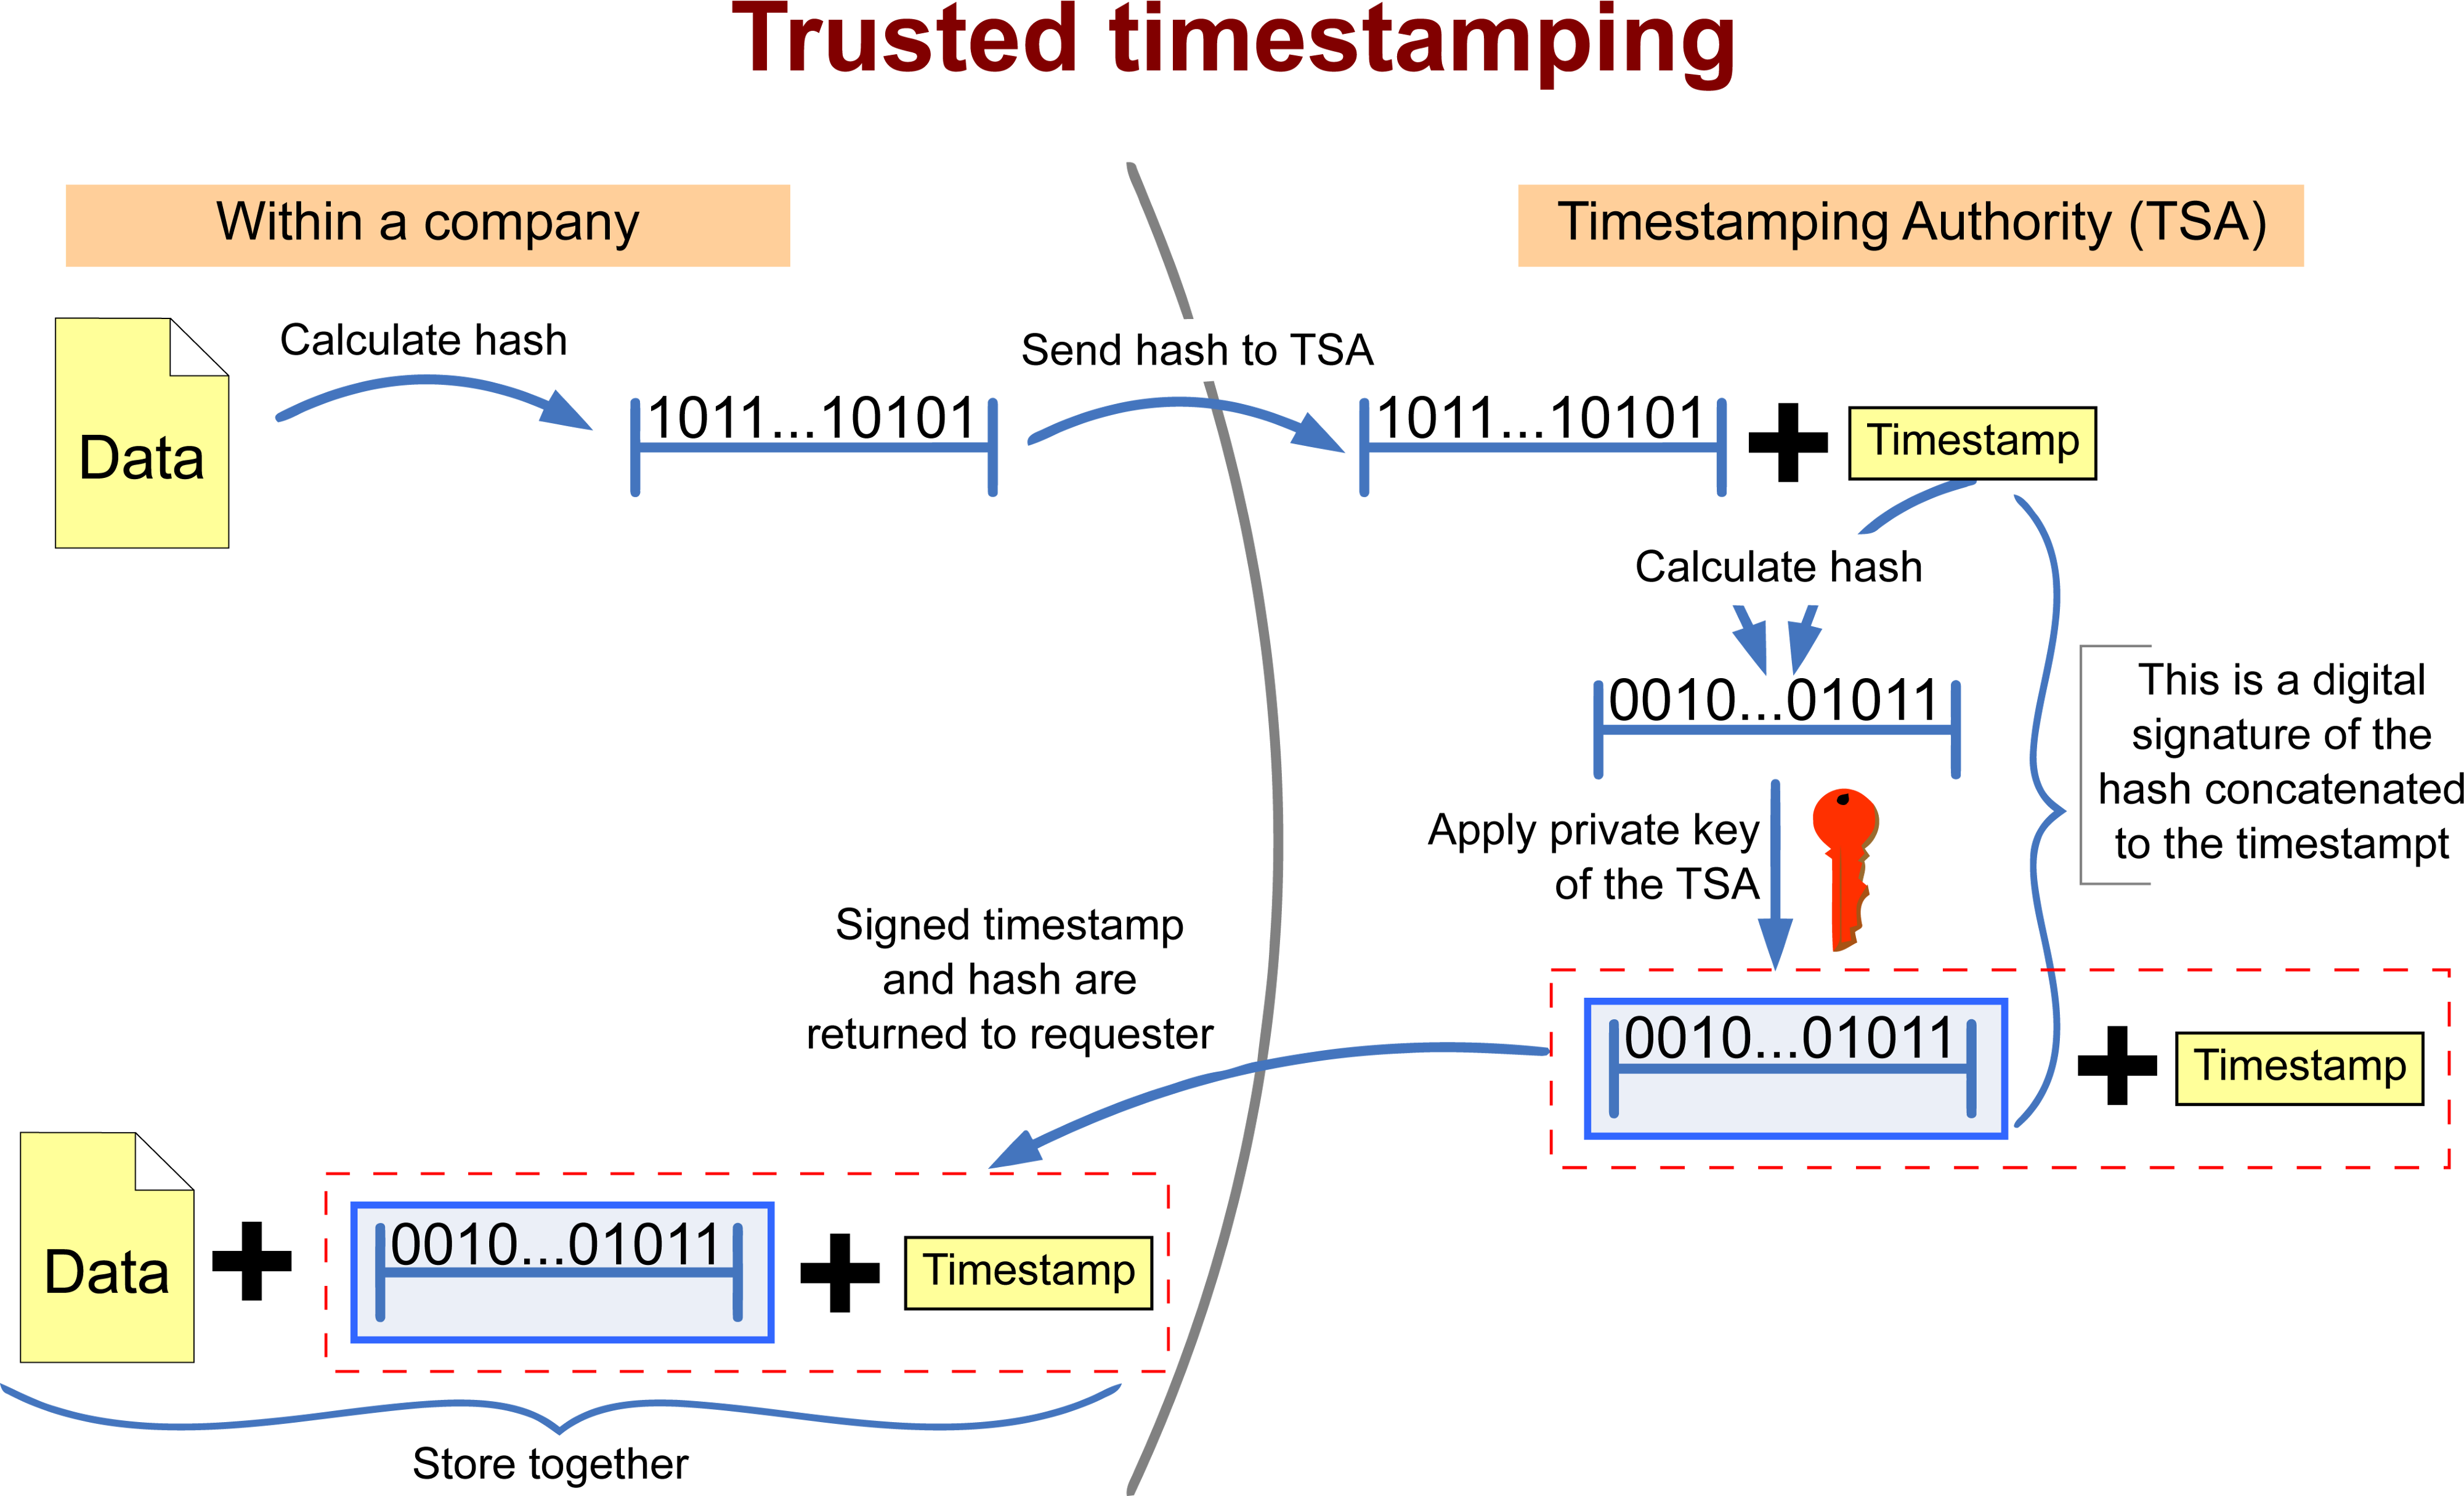 Graphic describing the process of requesting a timestamp token from a Timestamping Authority (TSA) (Original by Bart Van den Bosch, vector by Tsuruya, CC BY-SA 2.0 be)